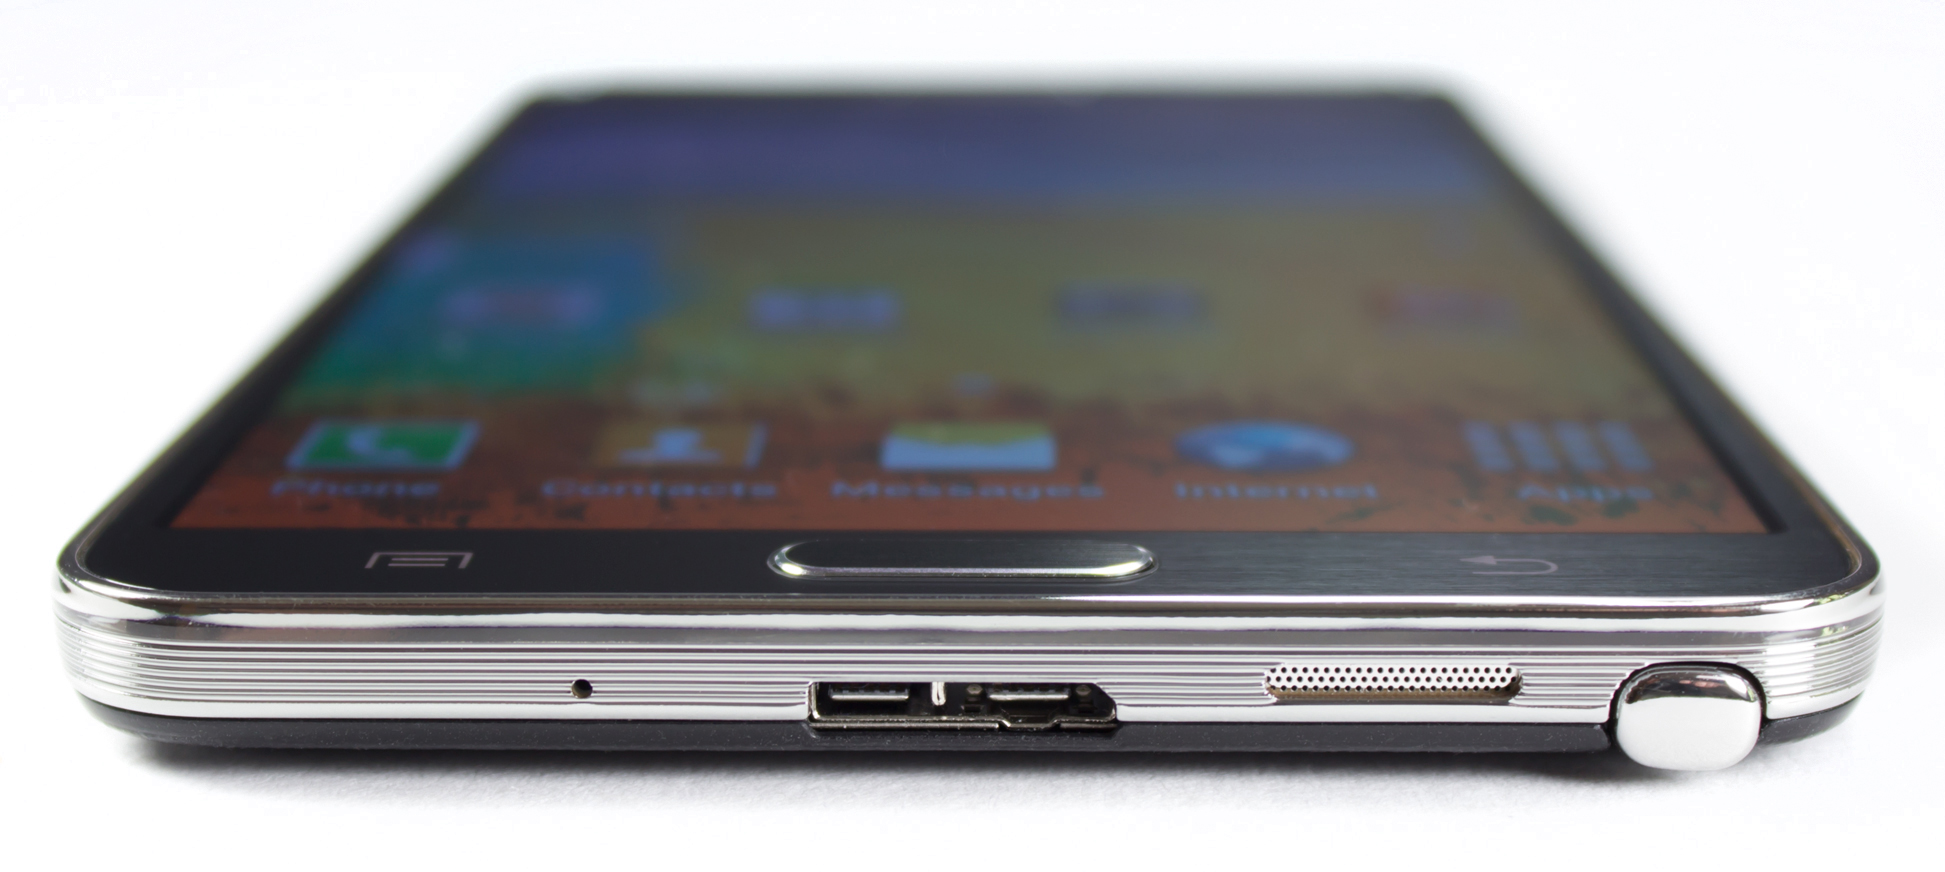 The bottom of the Note 3, with the new micro-USB 3.0 port.